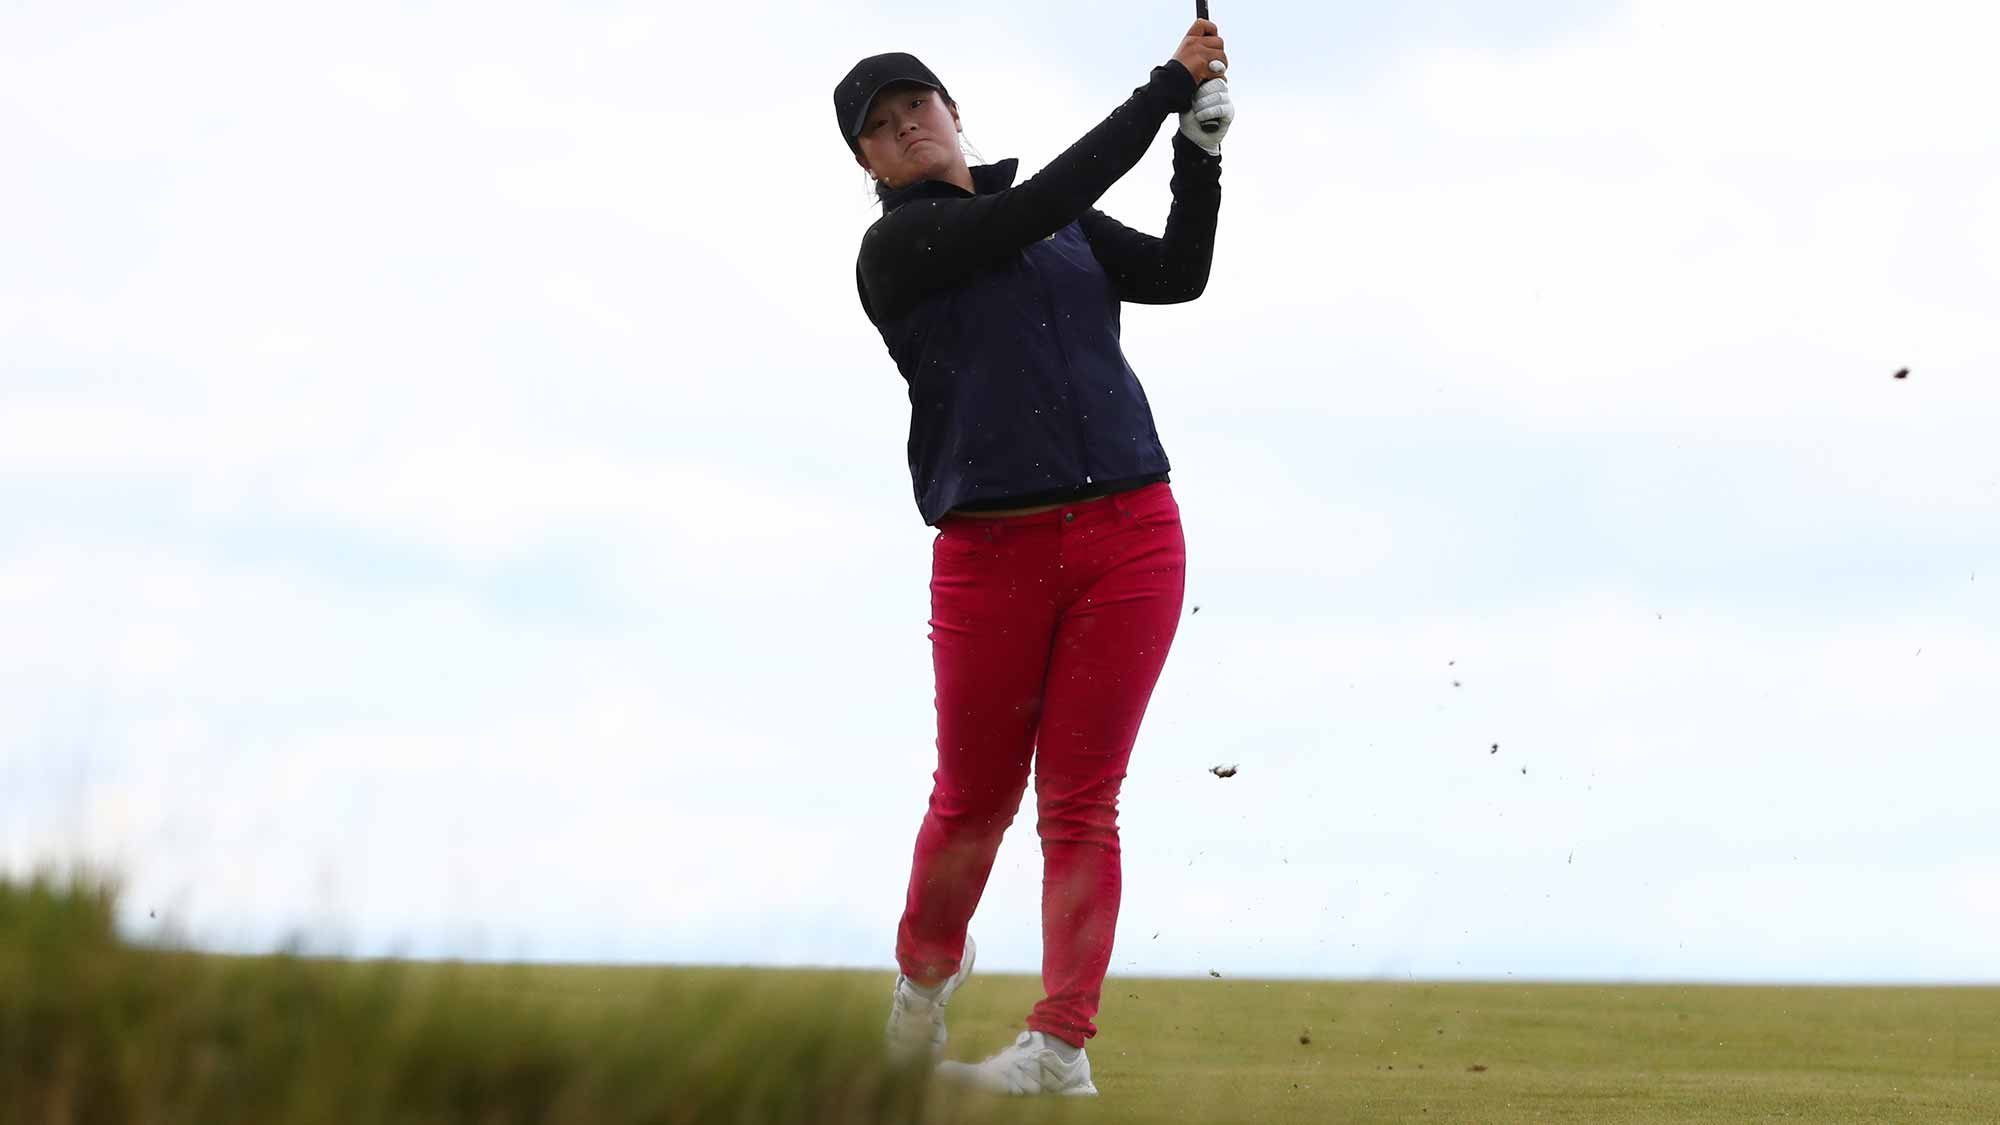 Angel Yin of the United States hits her second shot on the 4th hole during the third round of the Ricoh Women's British Open at Kingsbarns Golf Links